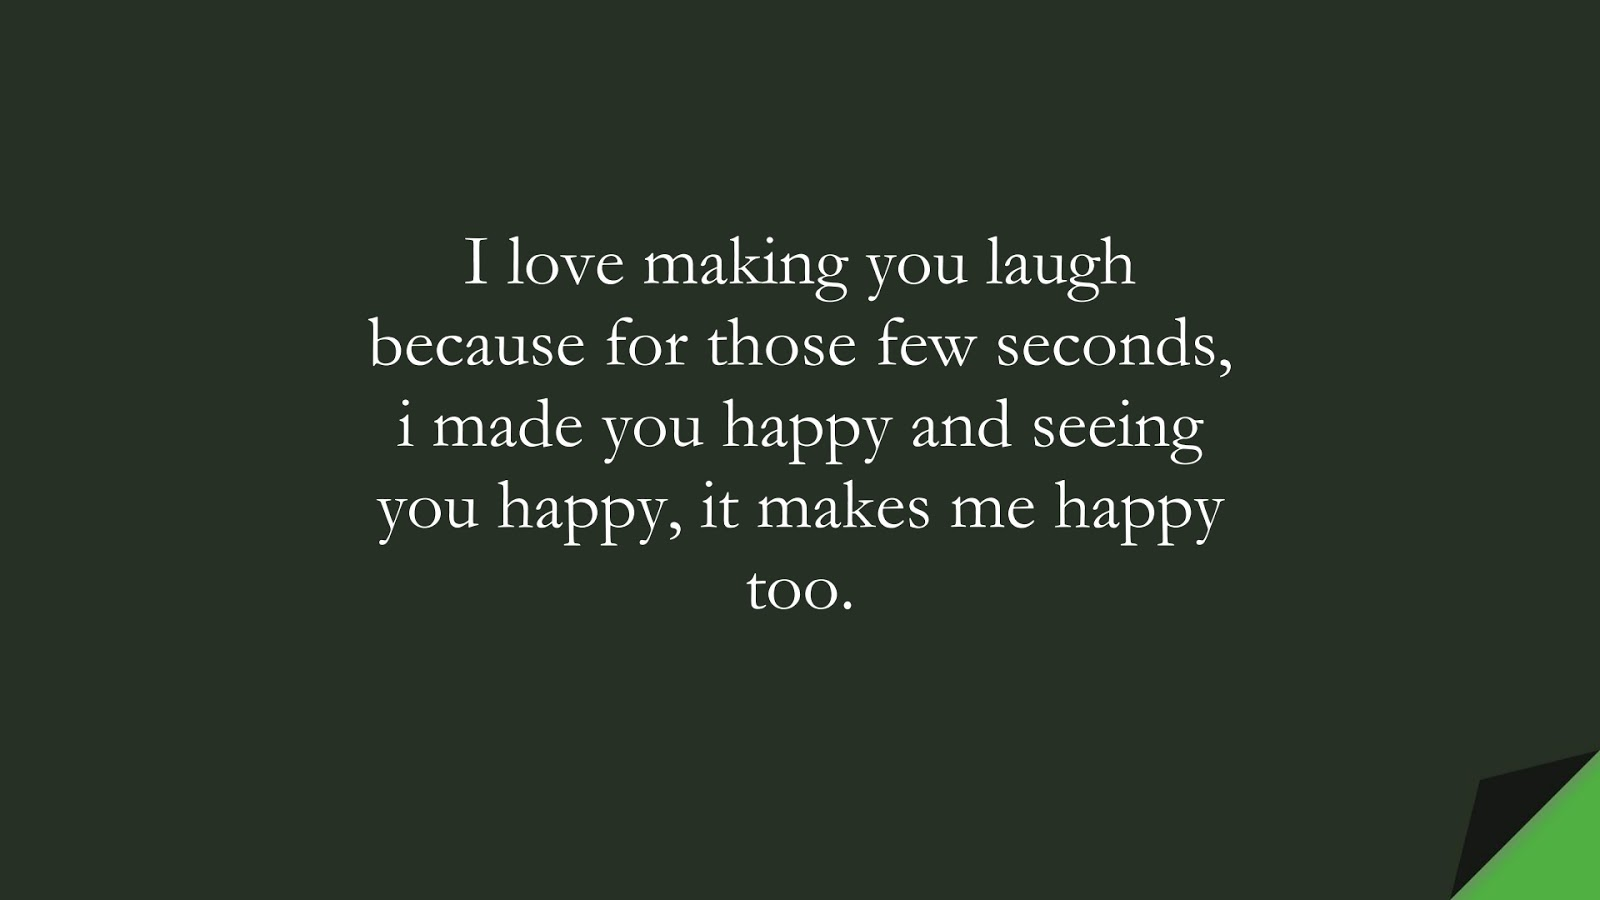 I love making you laugh because for those few seconds, i made you happy and seeing you happy, it makes me happy too.FALSE